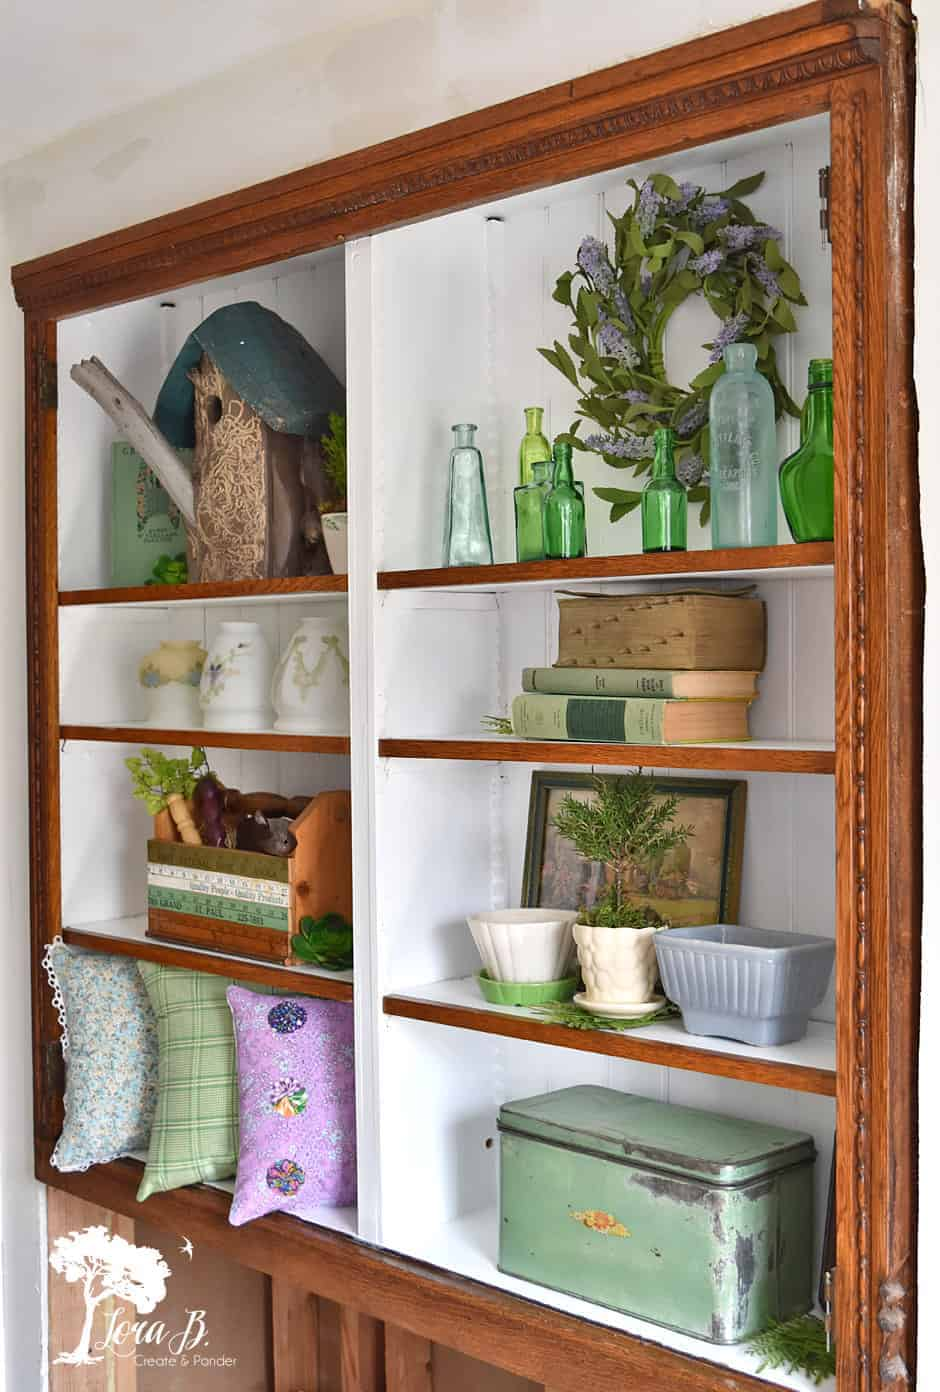 garden-inspired shelves